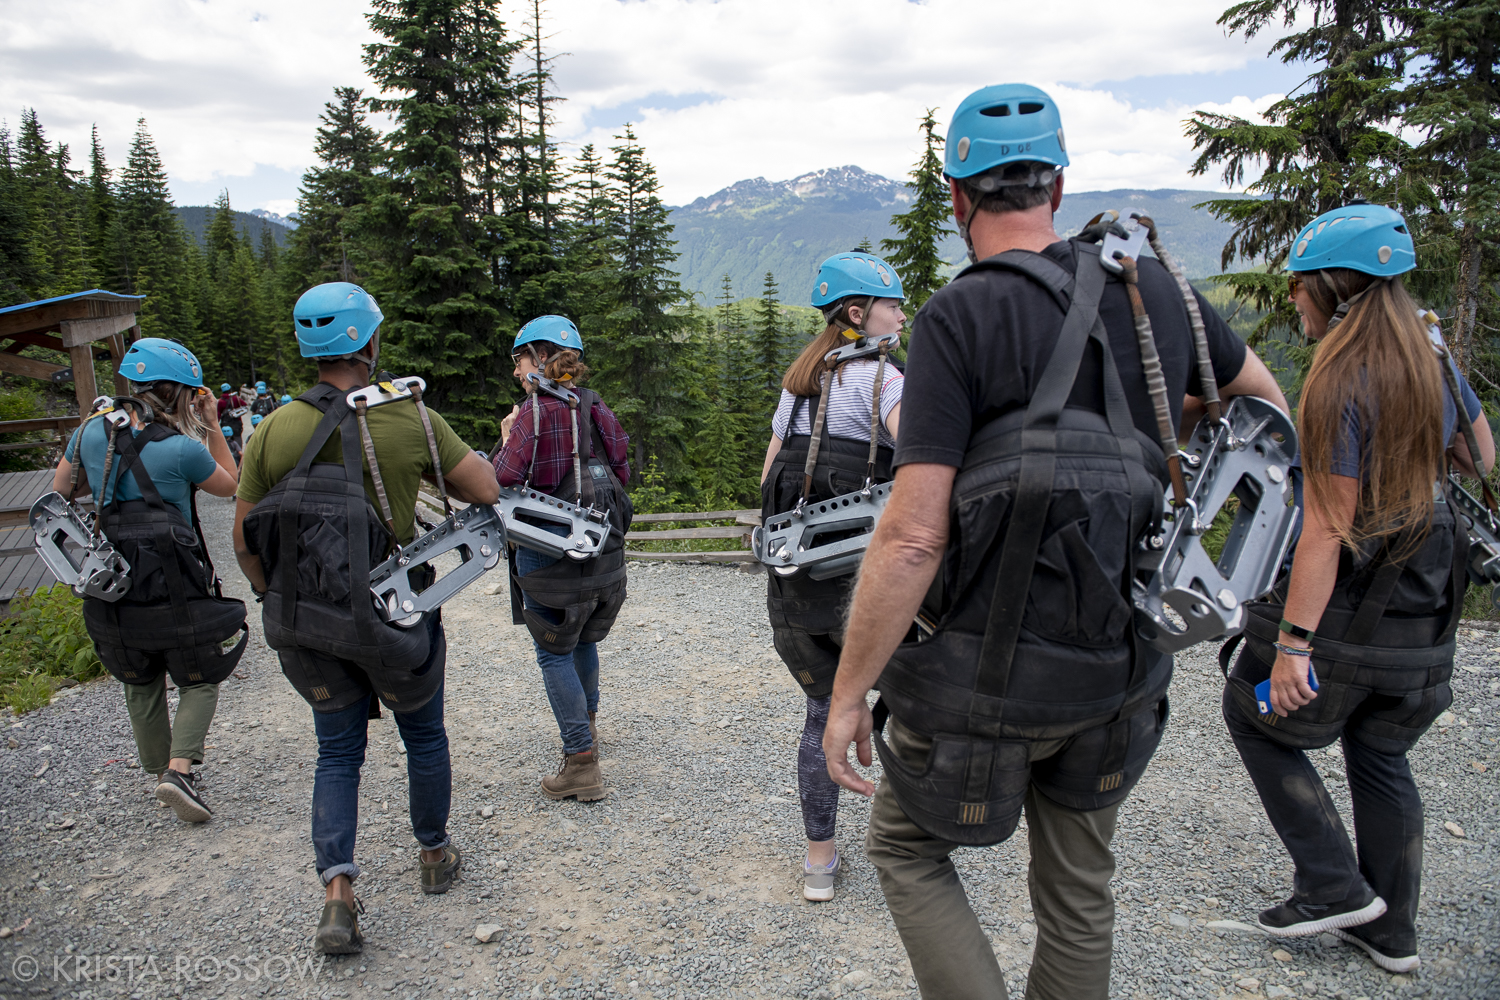 13-National-Geographic-Krista-Rossow-Whistler-ziplining-adventure